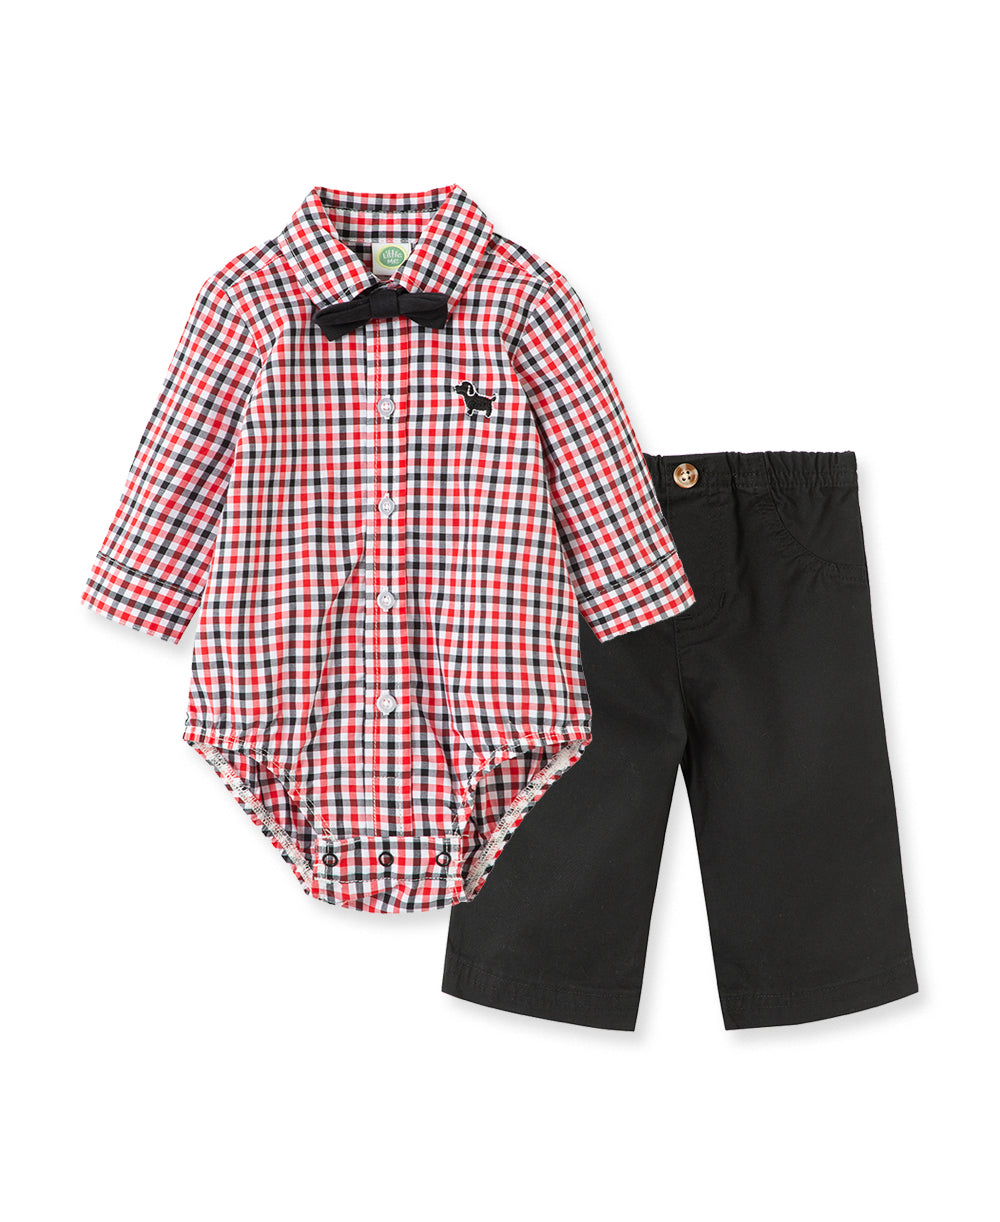 Puppy Woven Pant Set